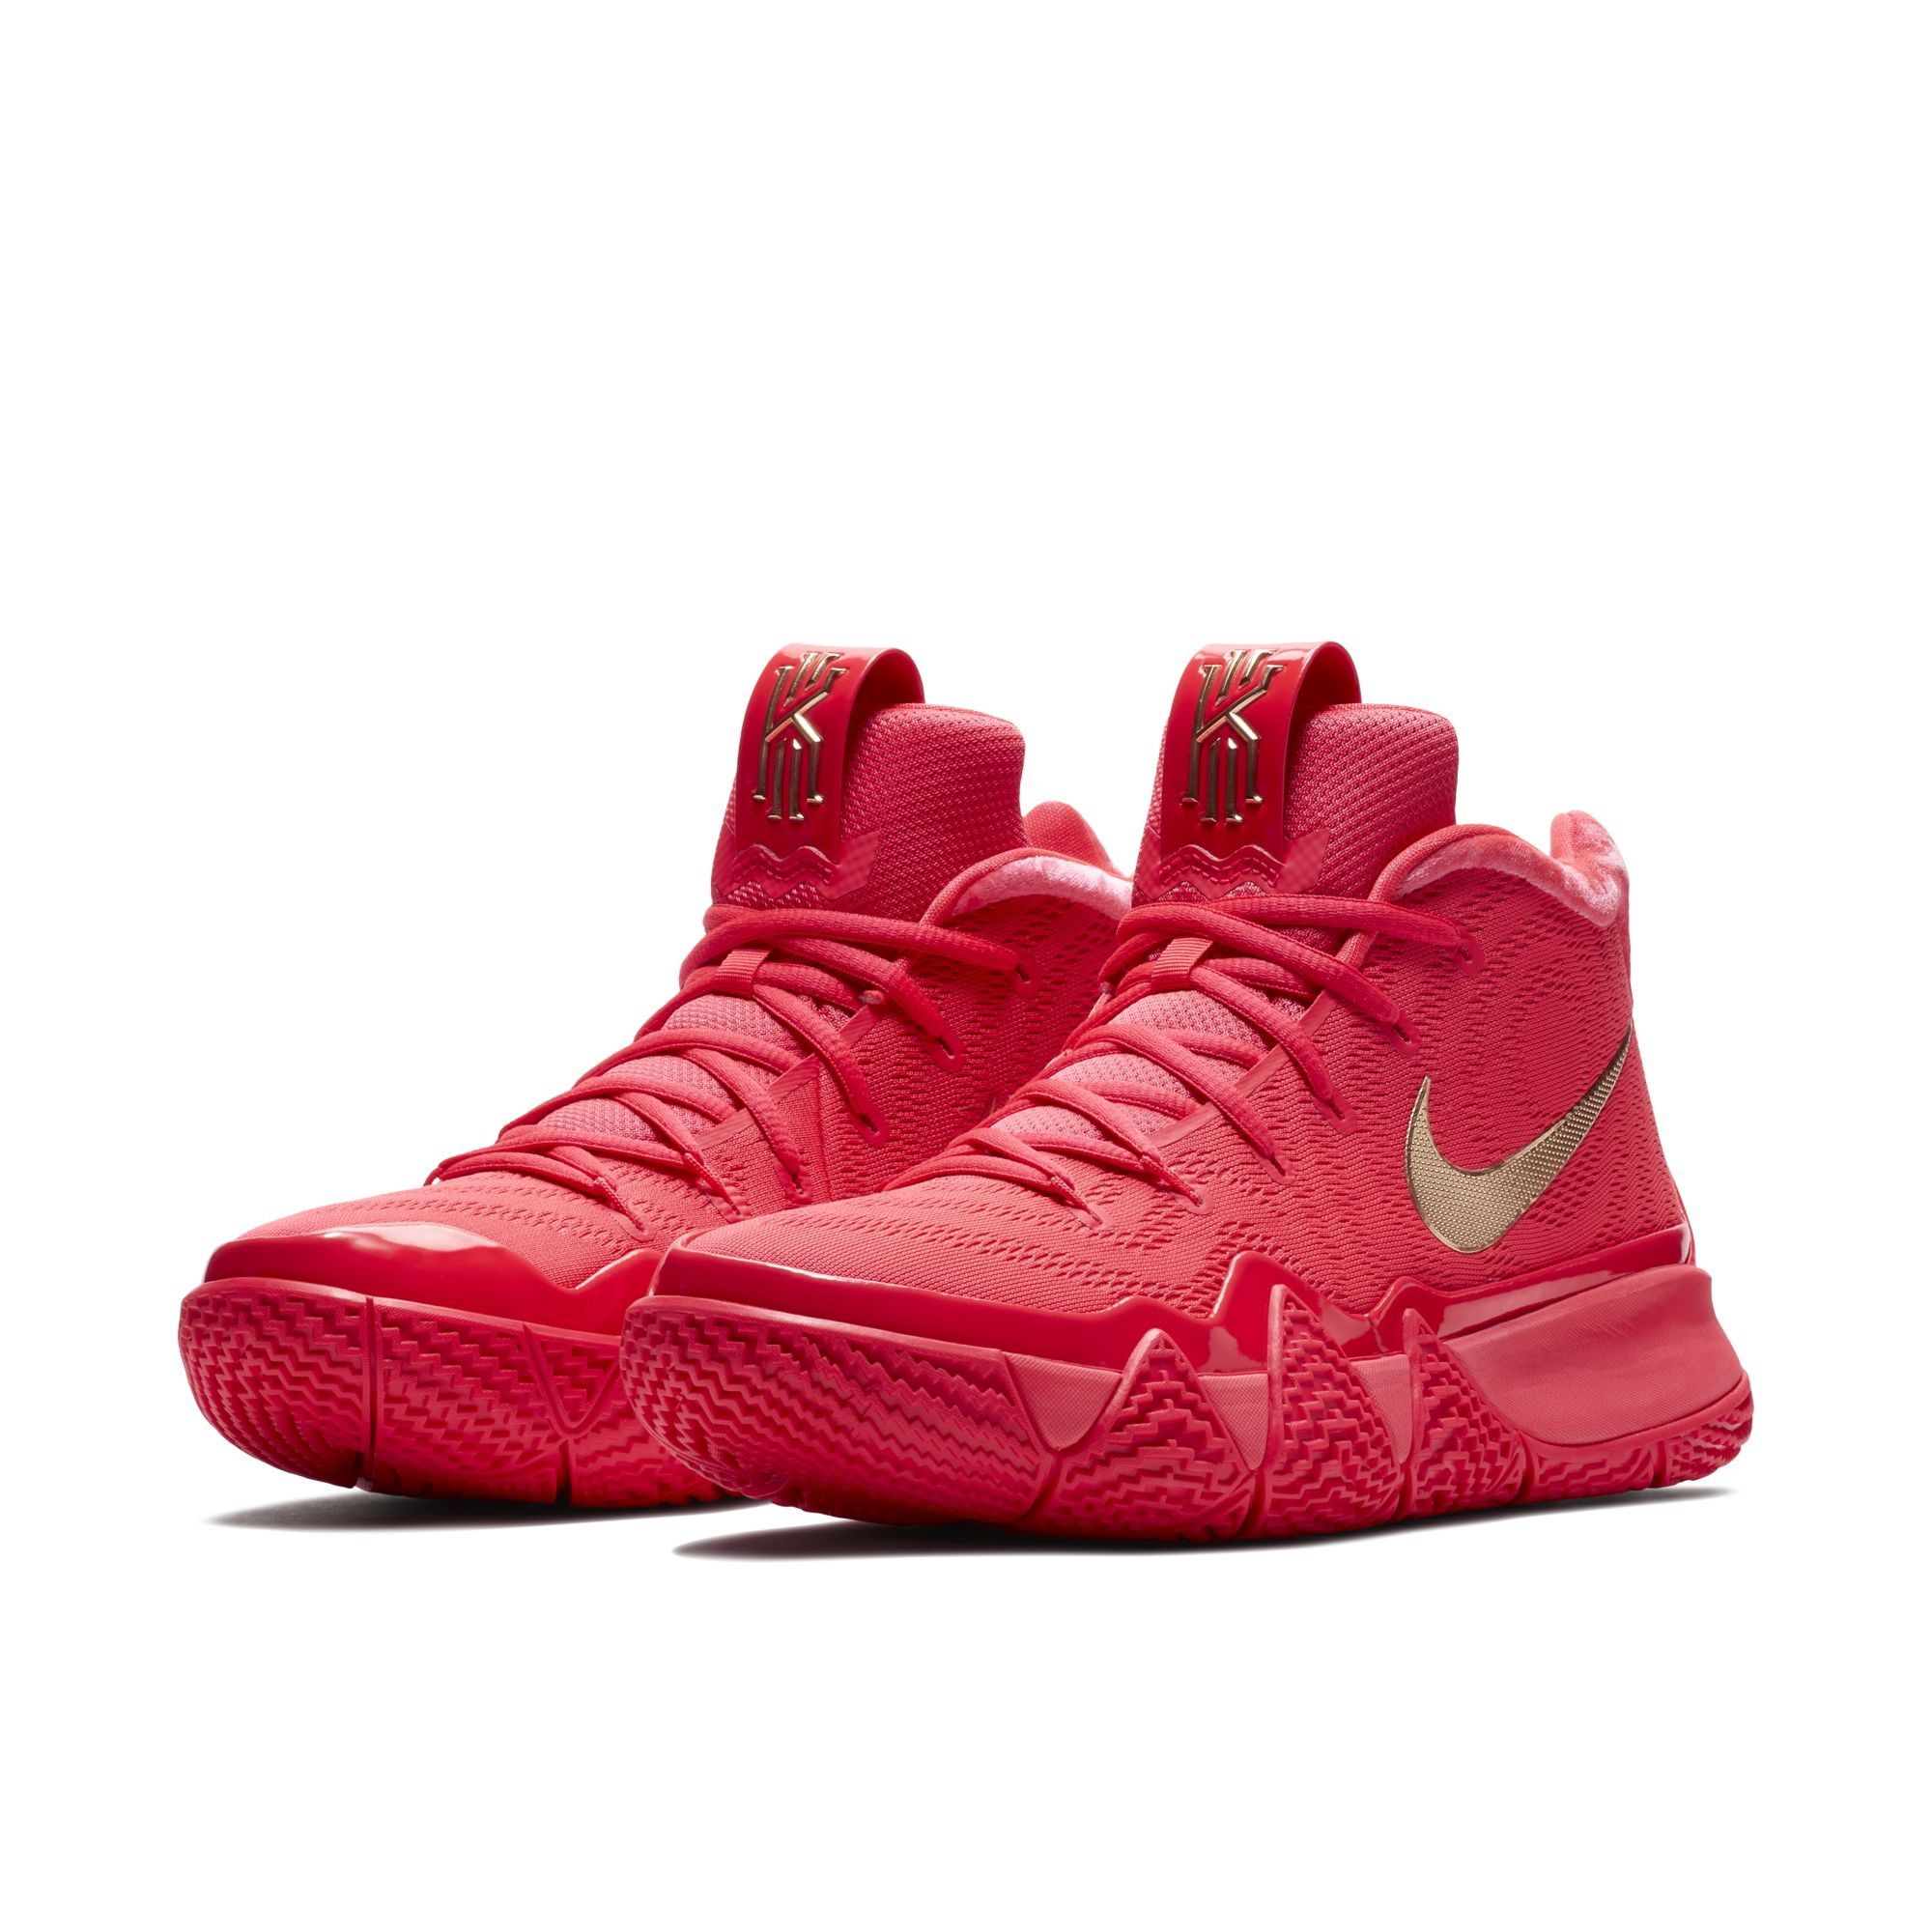 buy online fb4ac b4956 The Nike Kyrie 4 'Red Carpet' Was a Facebook Messenger ...